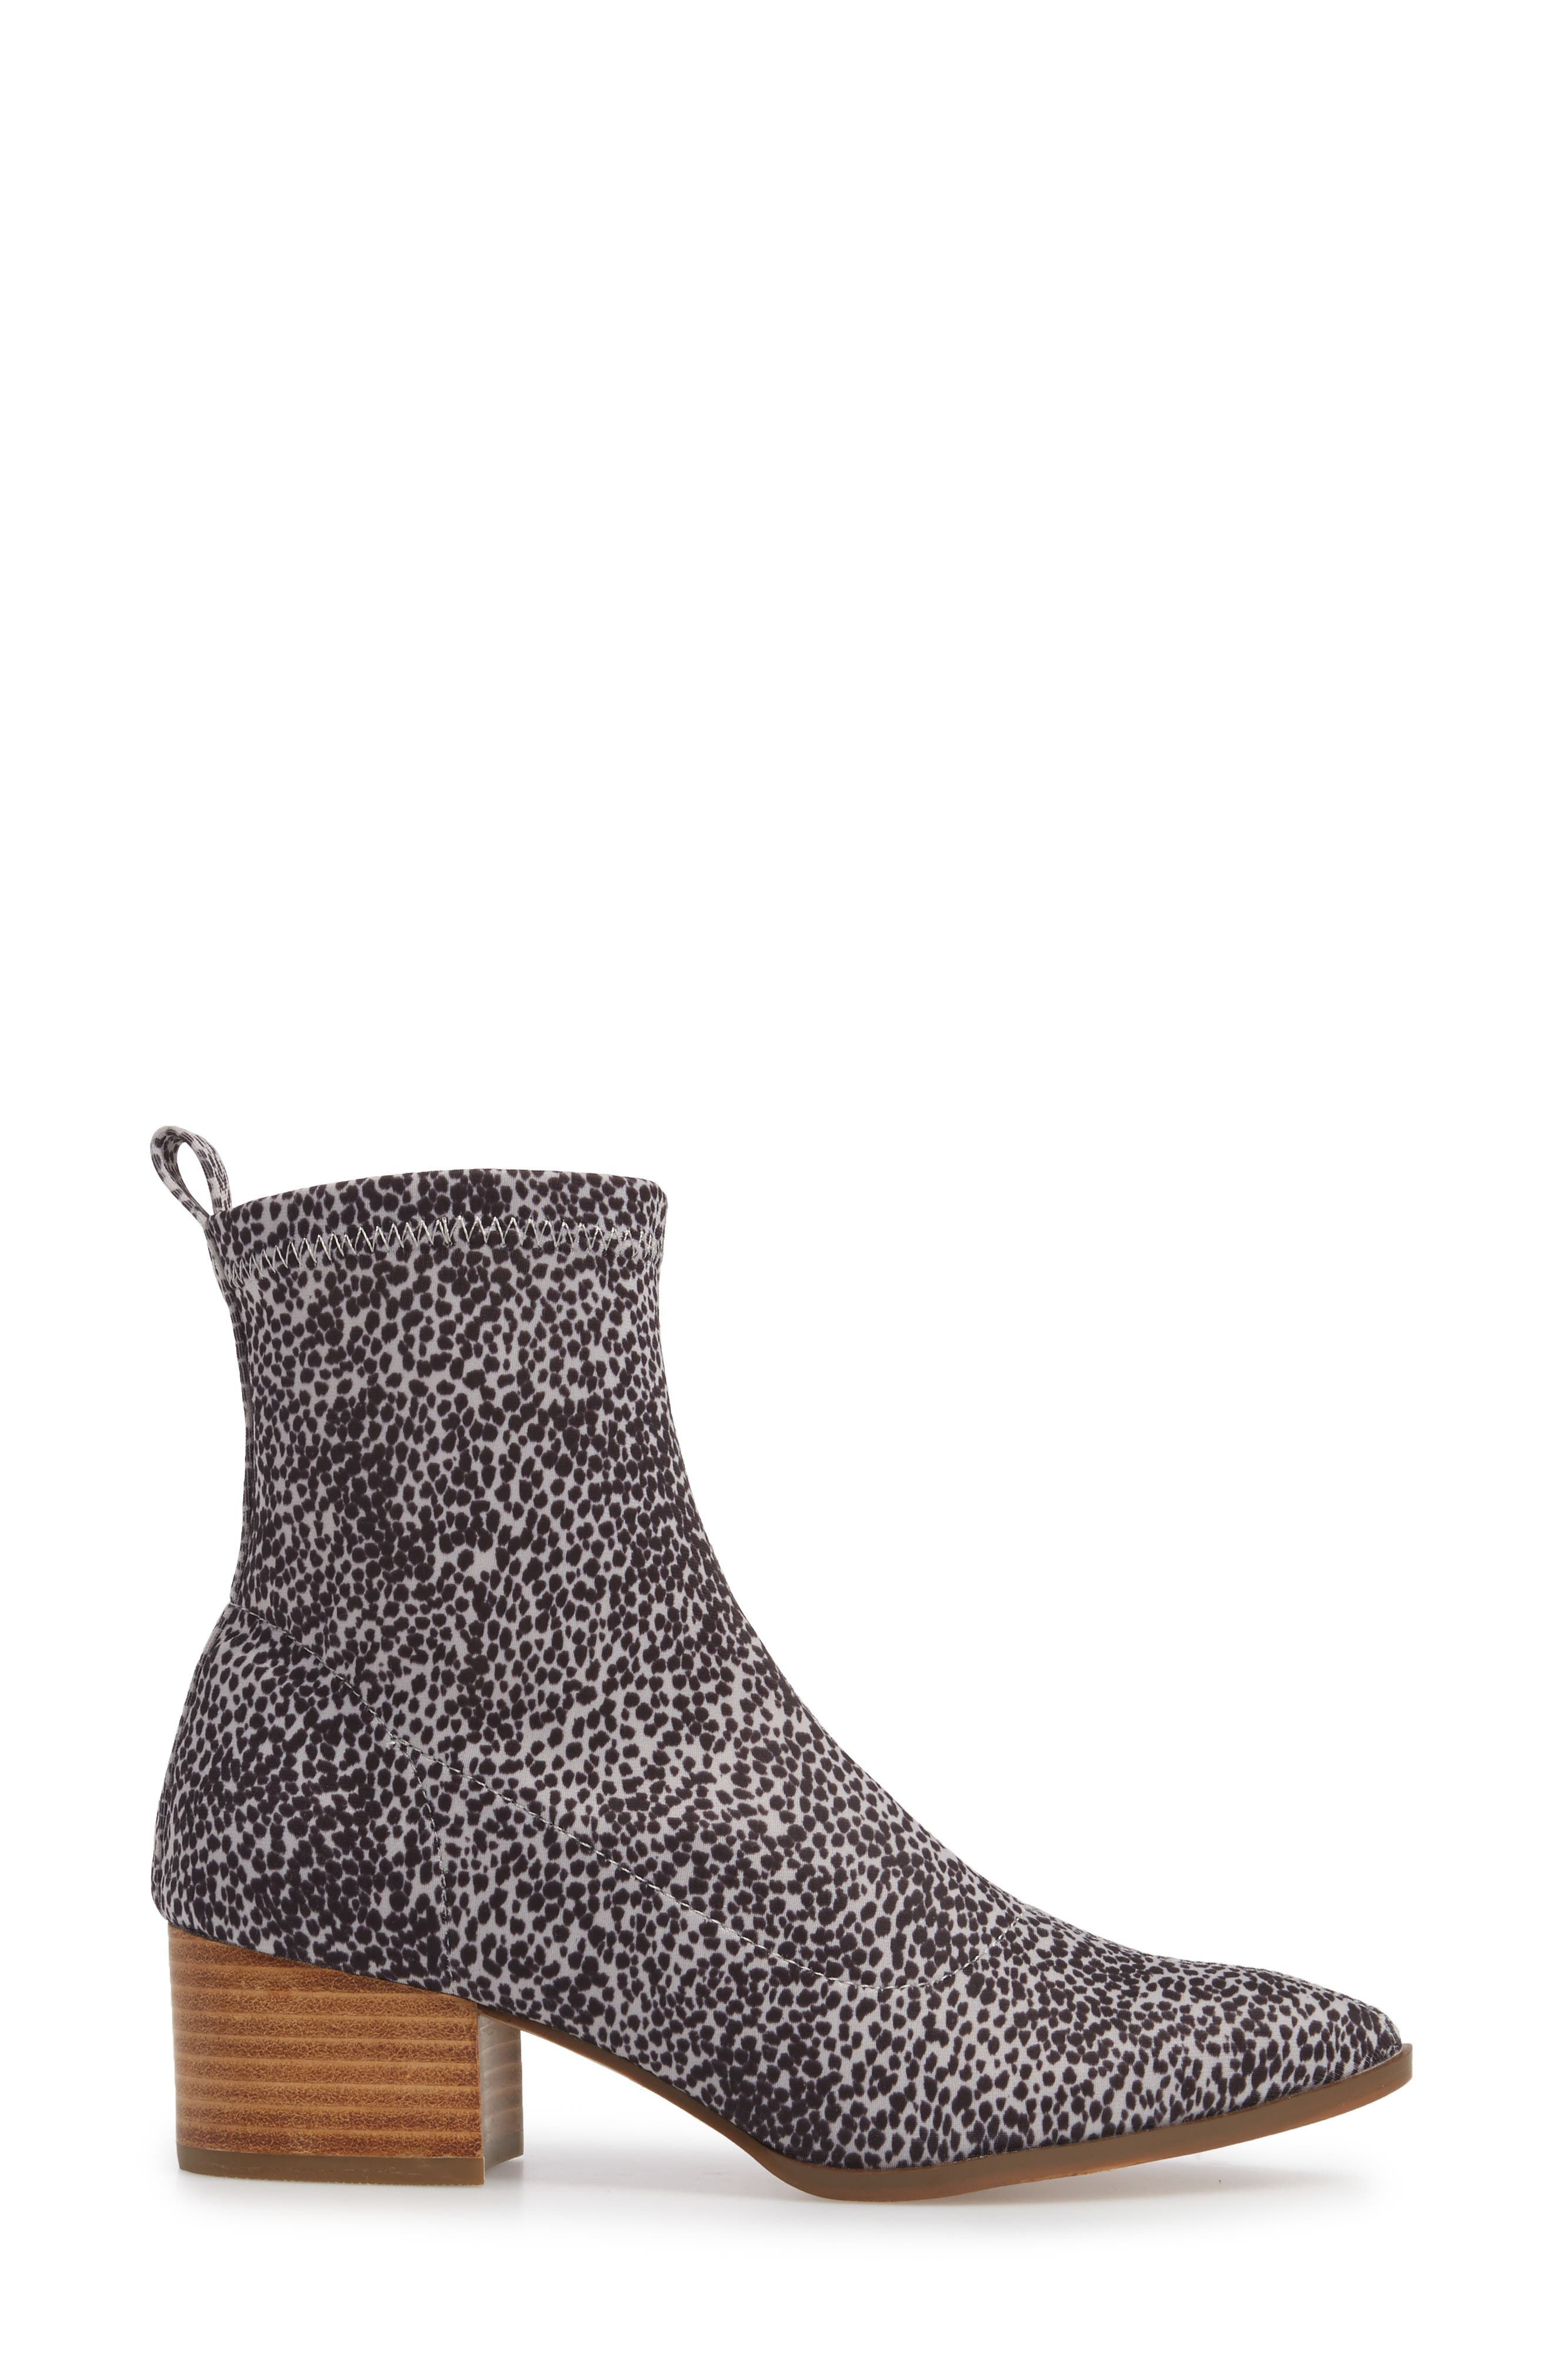 Amuse Society x Matisse Liliana Sock Bootie,                             Alternate thumbnail 3, color,                             111